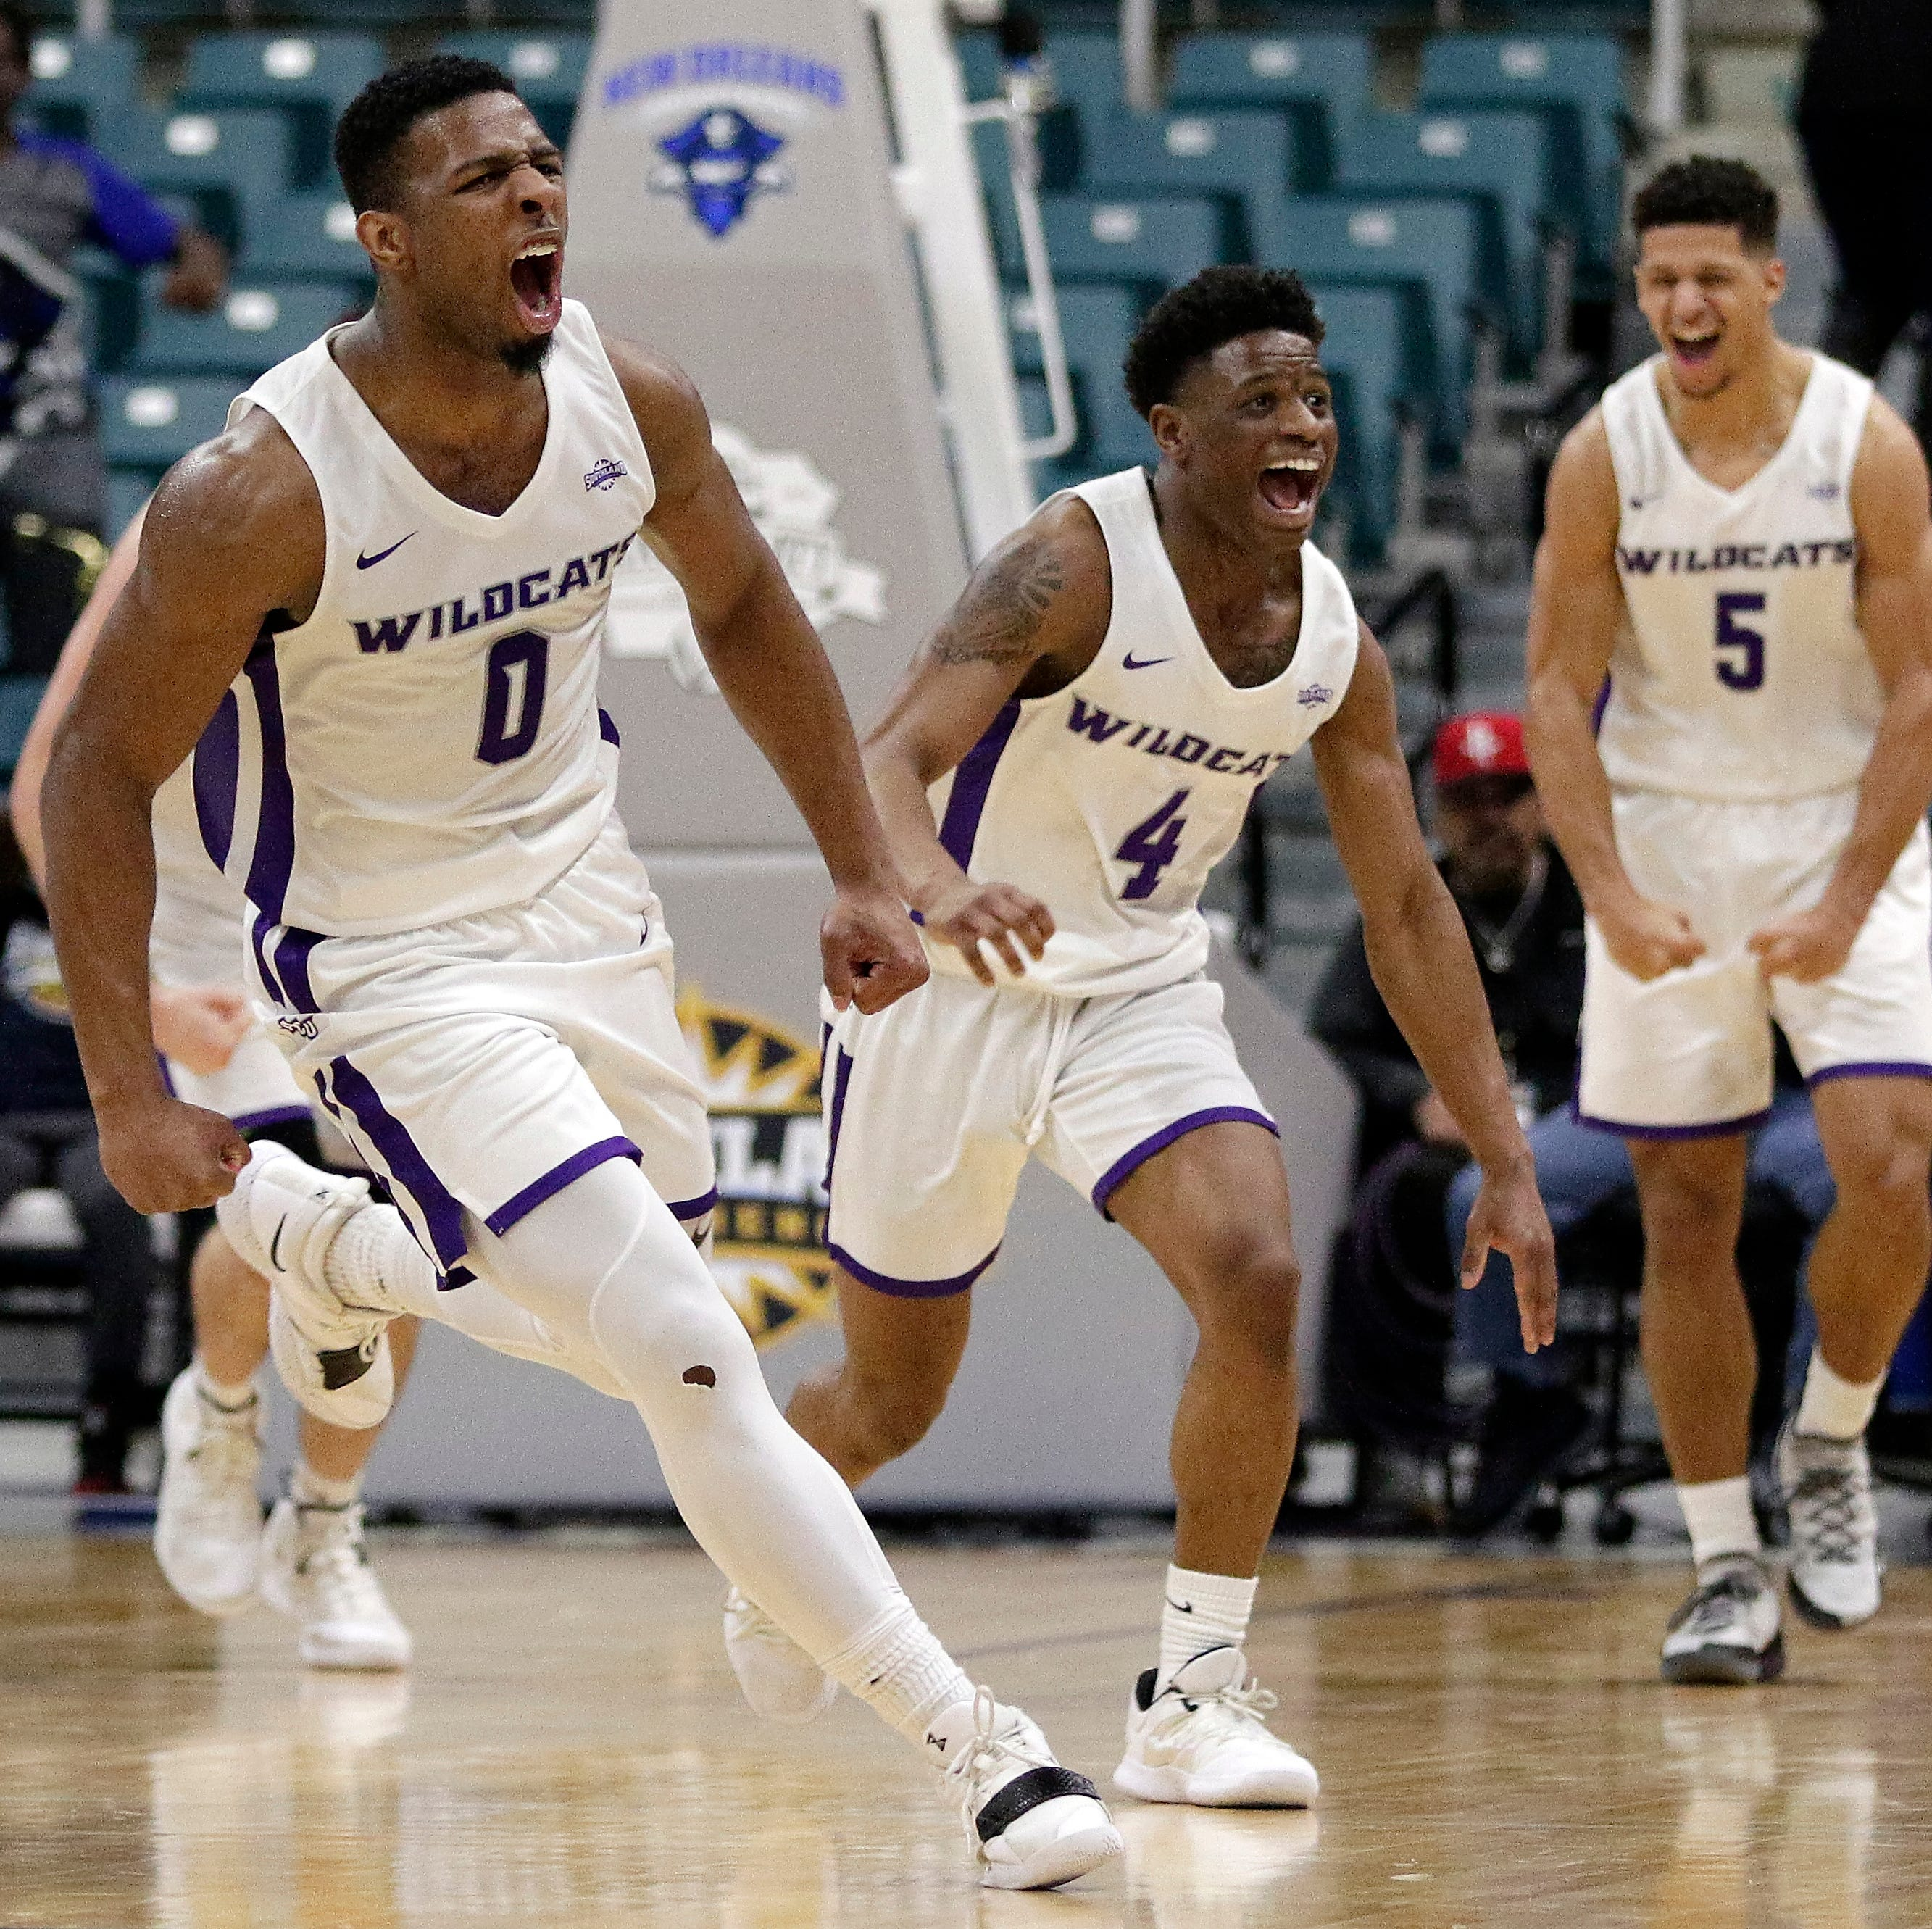 NCAA game time announced: How to watch Abilene Christian, Kentucky basketball